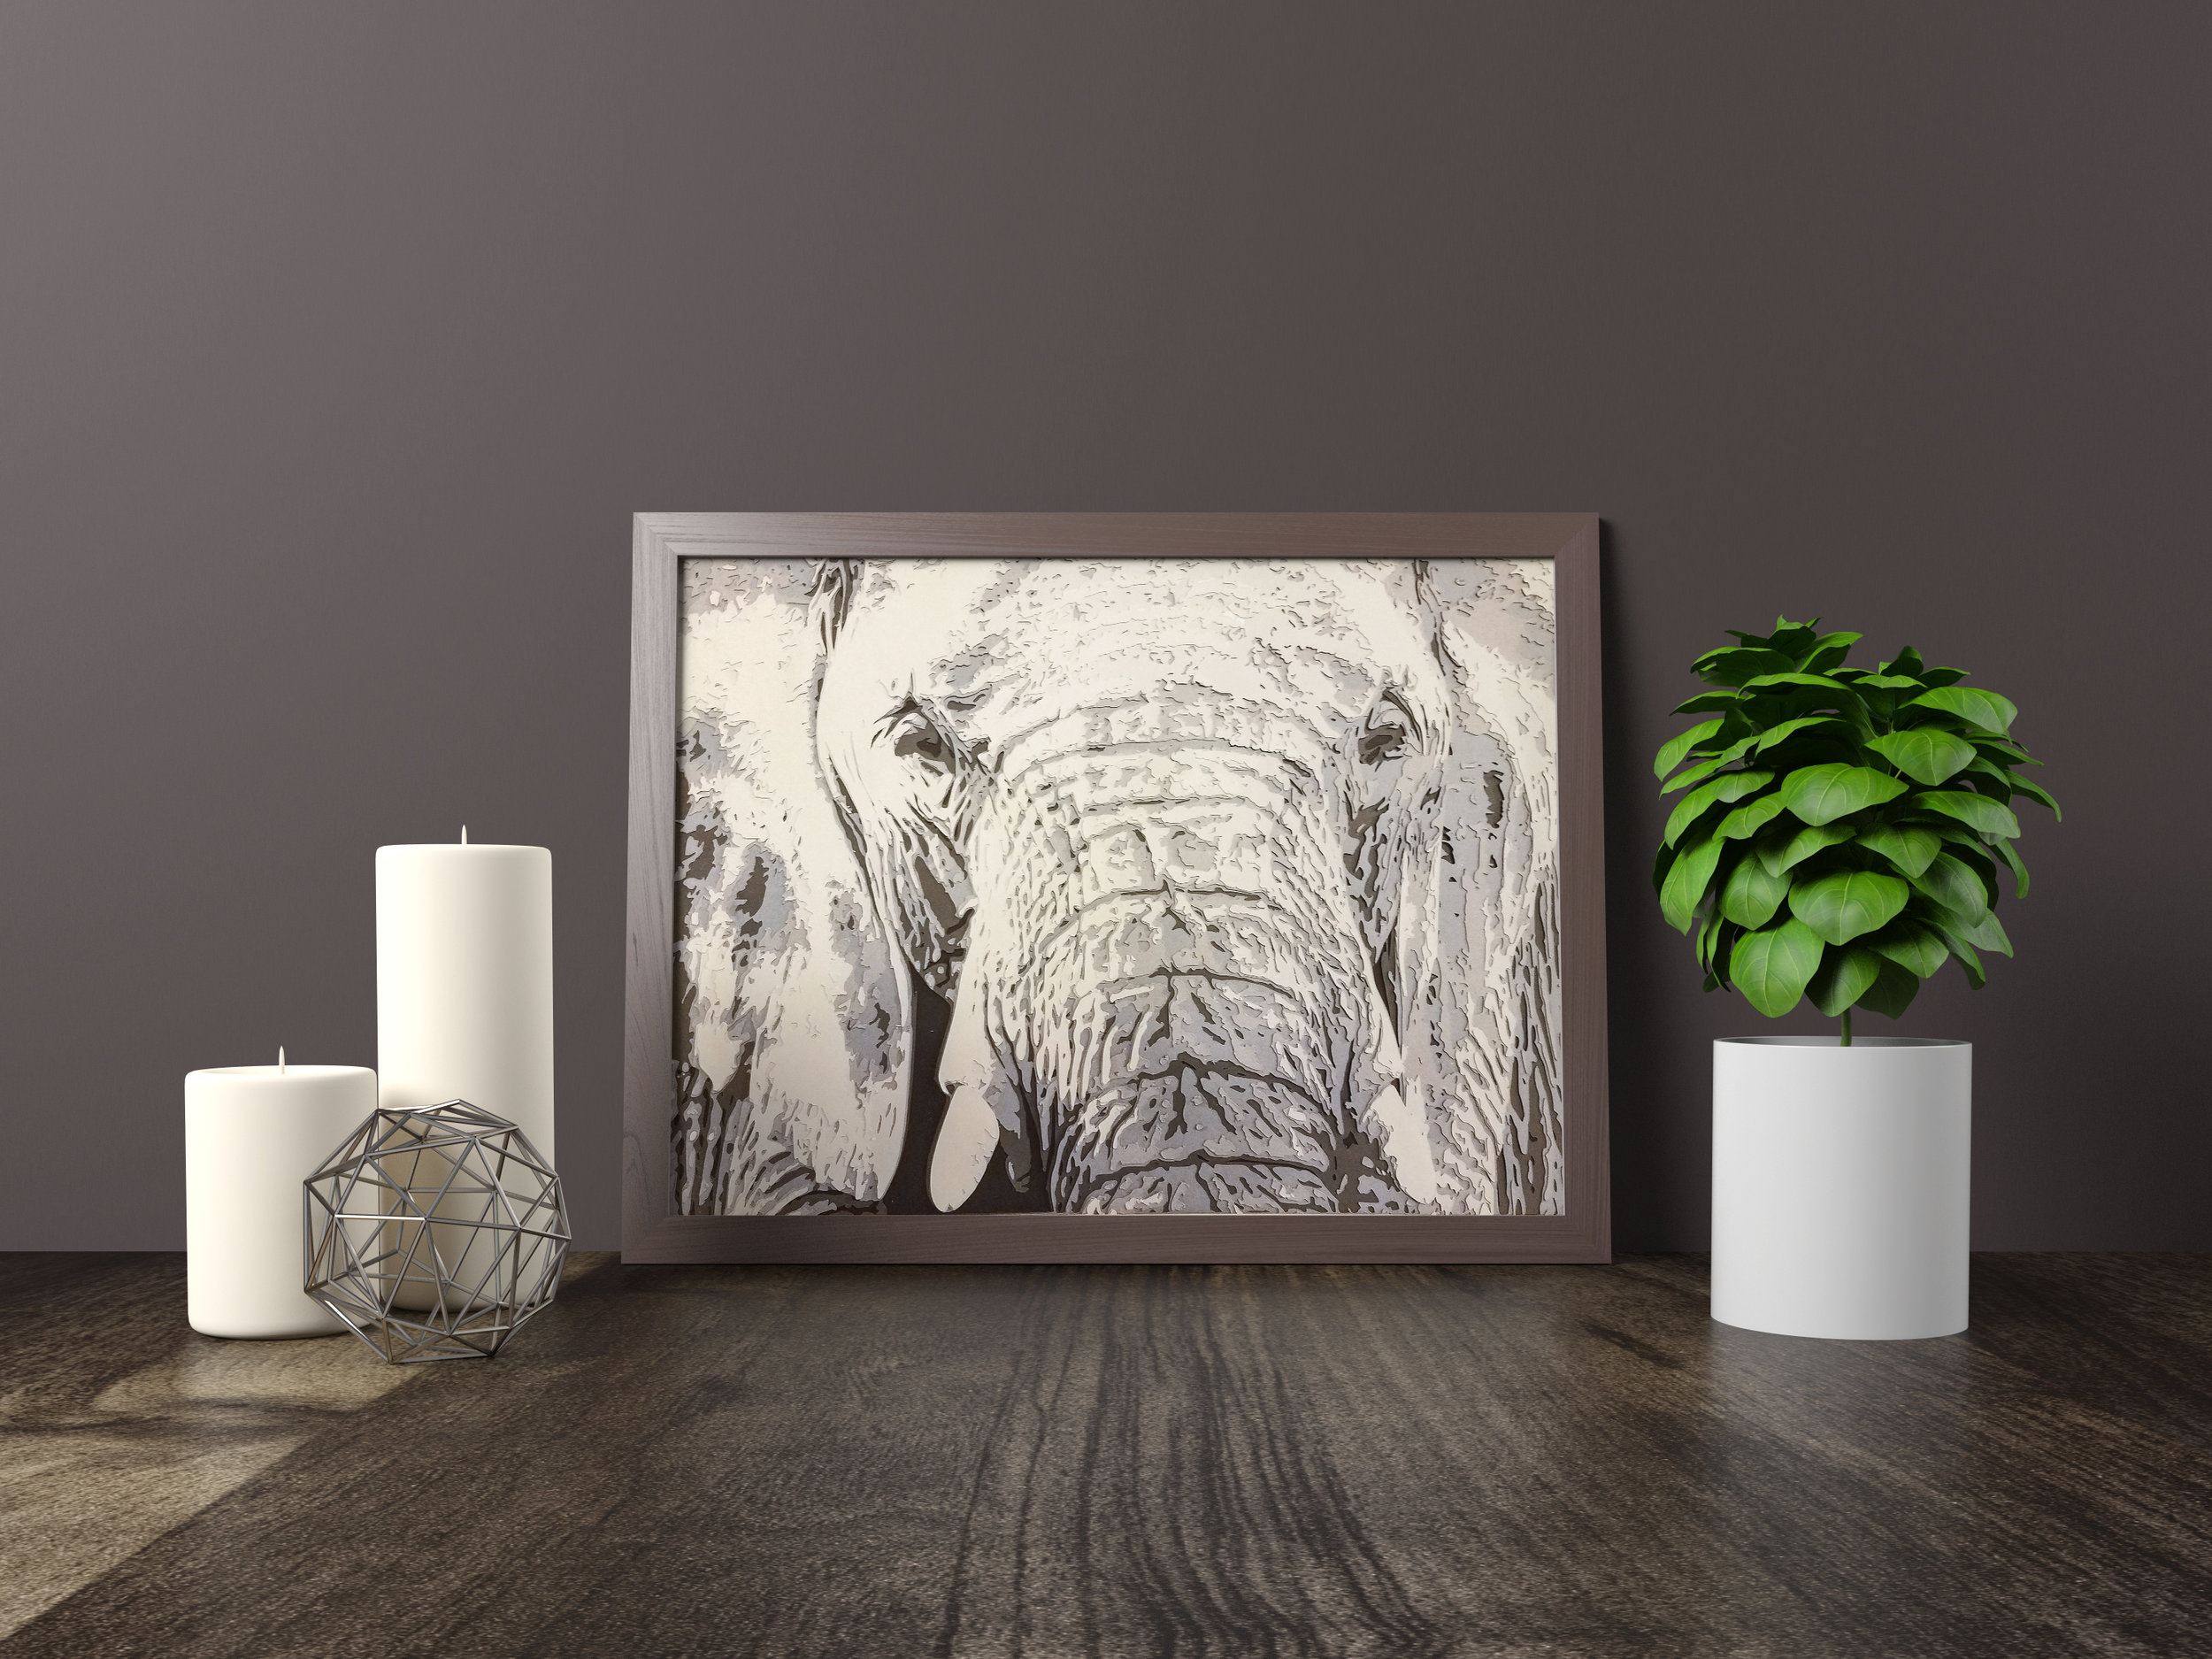 WISE OLD ELEPHANT - Winner - 2nd Place, Omaha Artists, Inc. Winter Show 2018Original artwork *SOLD* 11